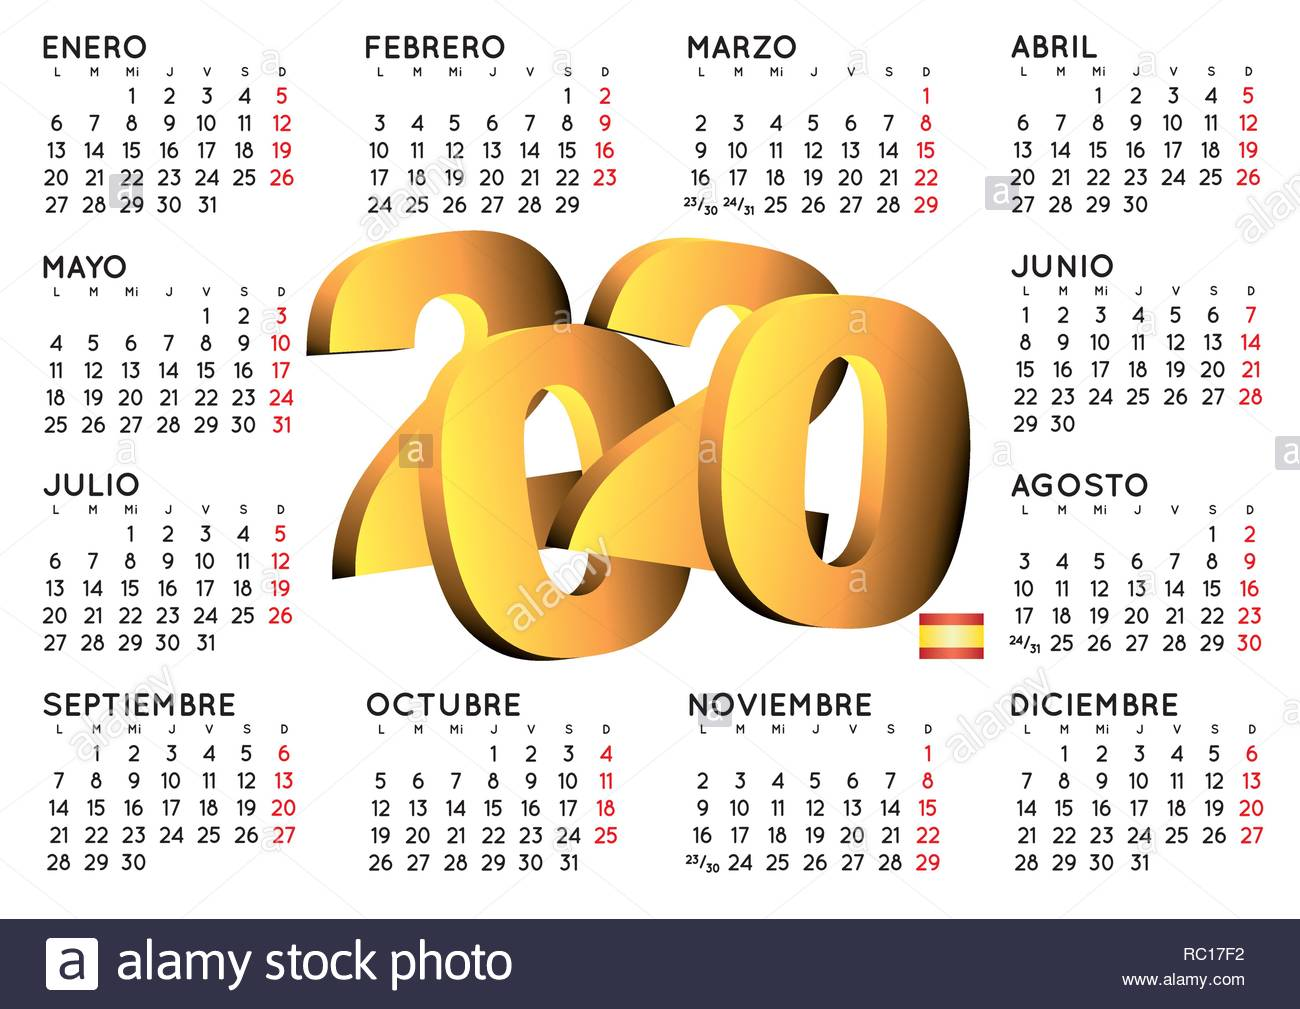 Calendario 2020 2020.2020 Elegant Calendar In Spanish Year 2020 Calendar